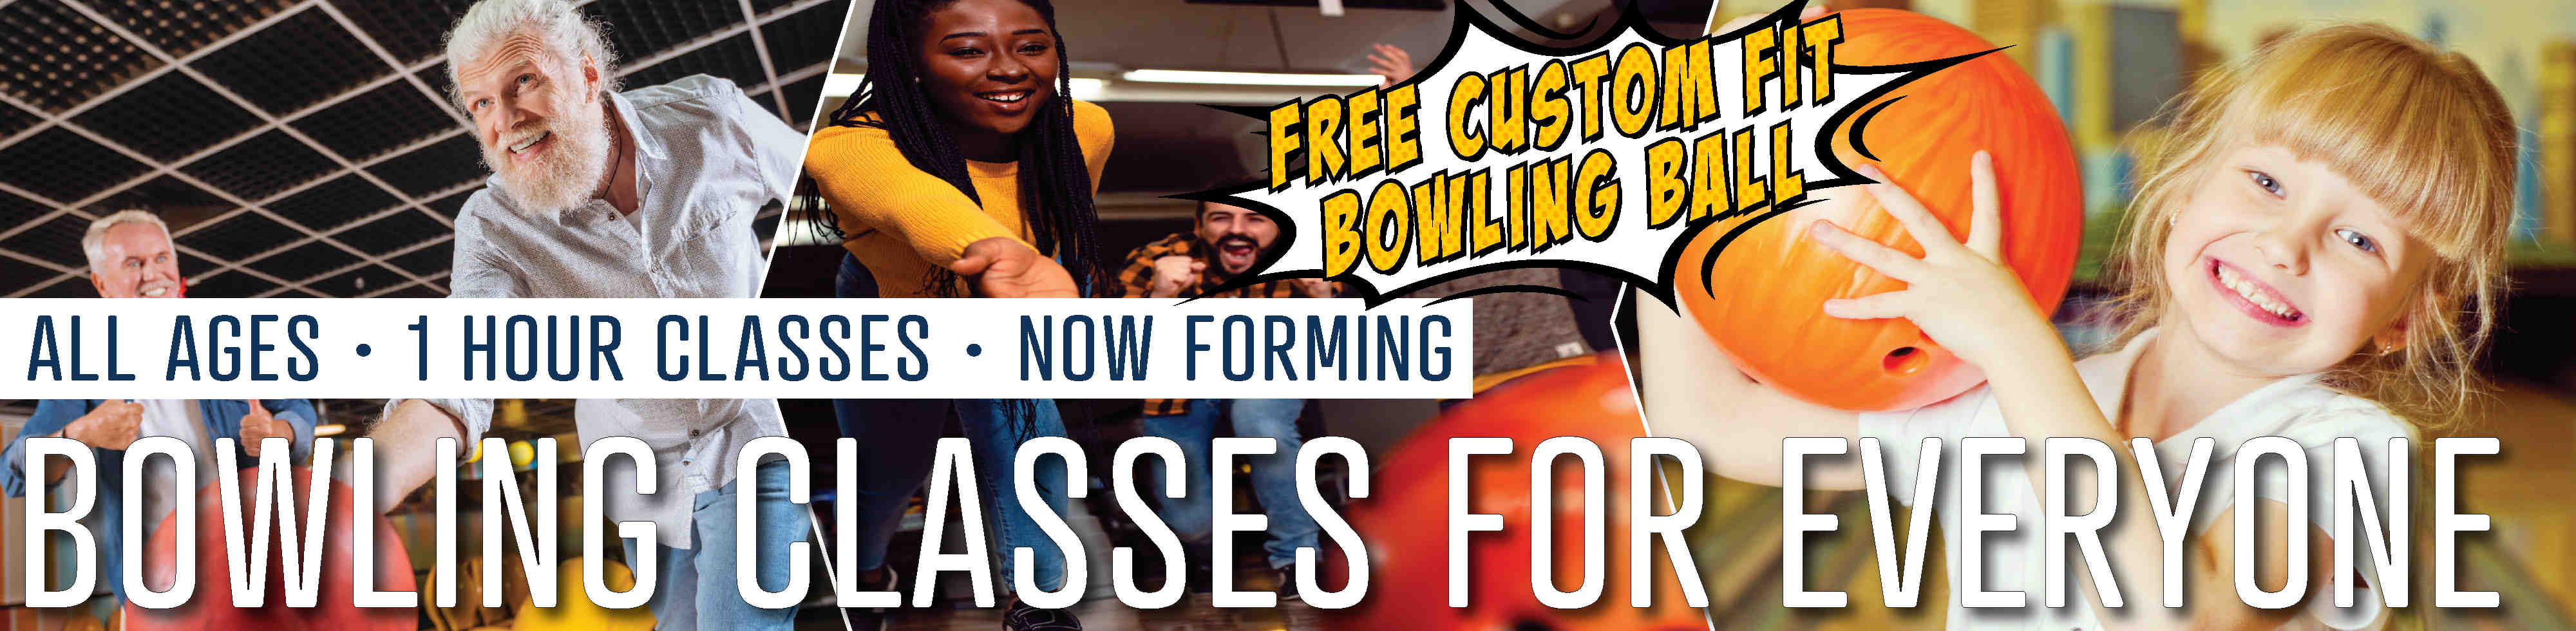 Bowlign classes for everyone